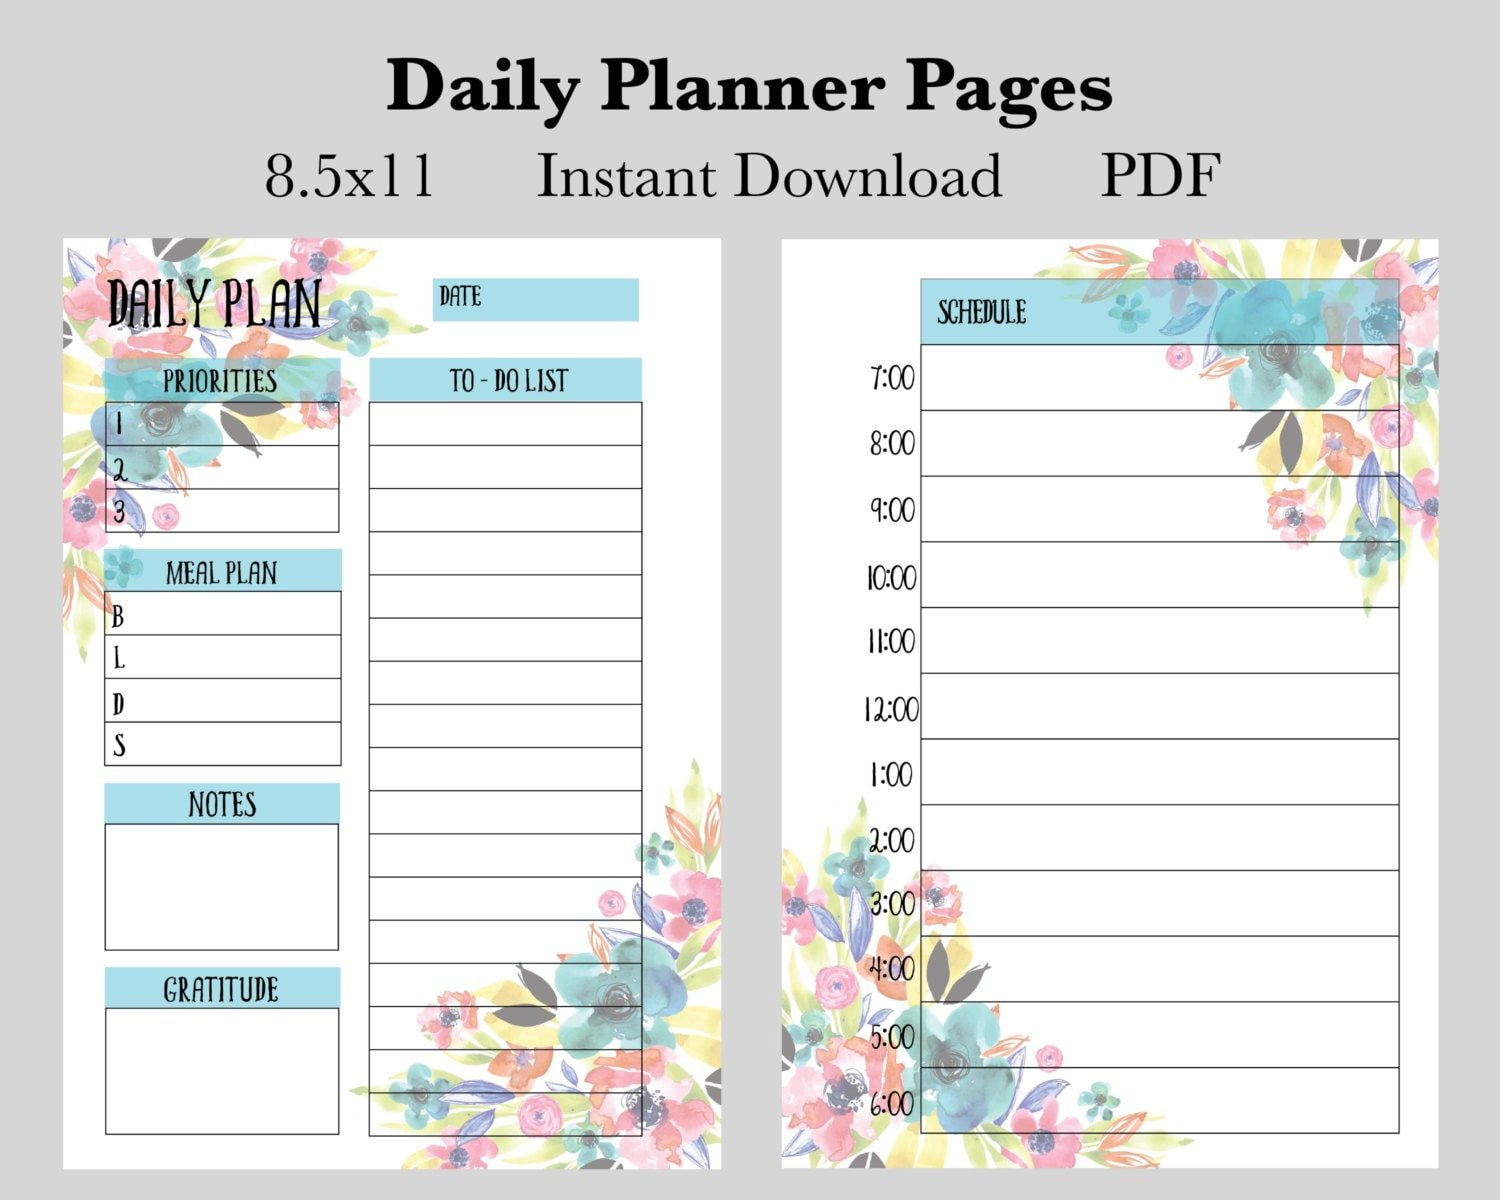 Daily Planner Pages Instant Download Printable Planner Pages within Daily Planner Pages Printable Photo